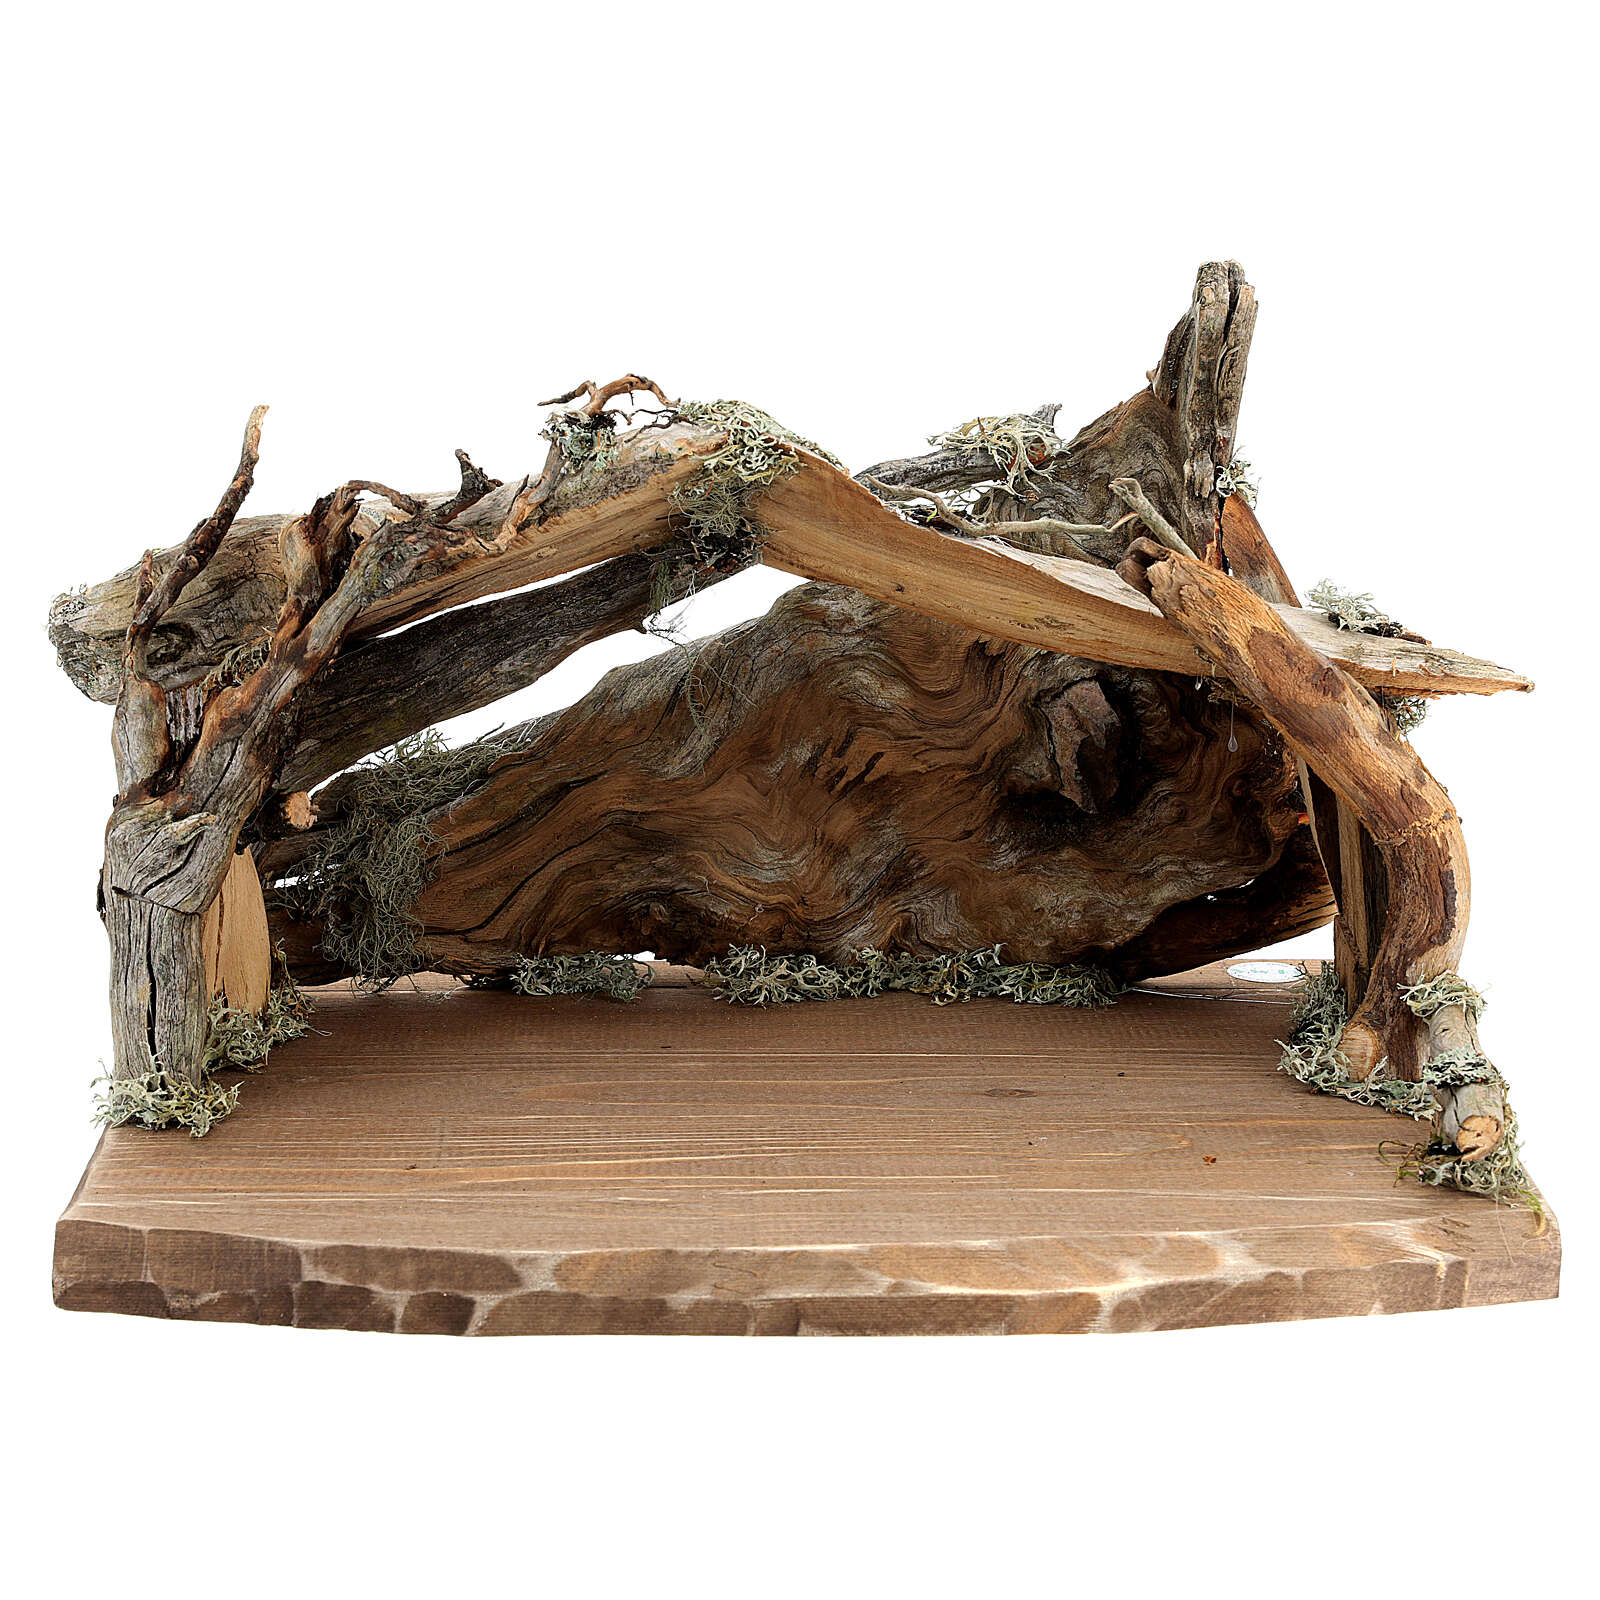 Wood bark stable with complete nativity, 12 pcs painted wood 11 cm Rainell 4